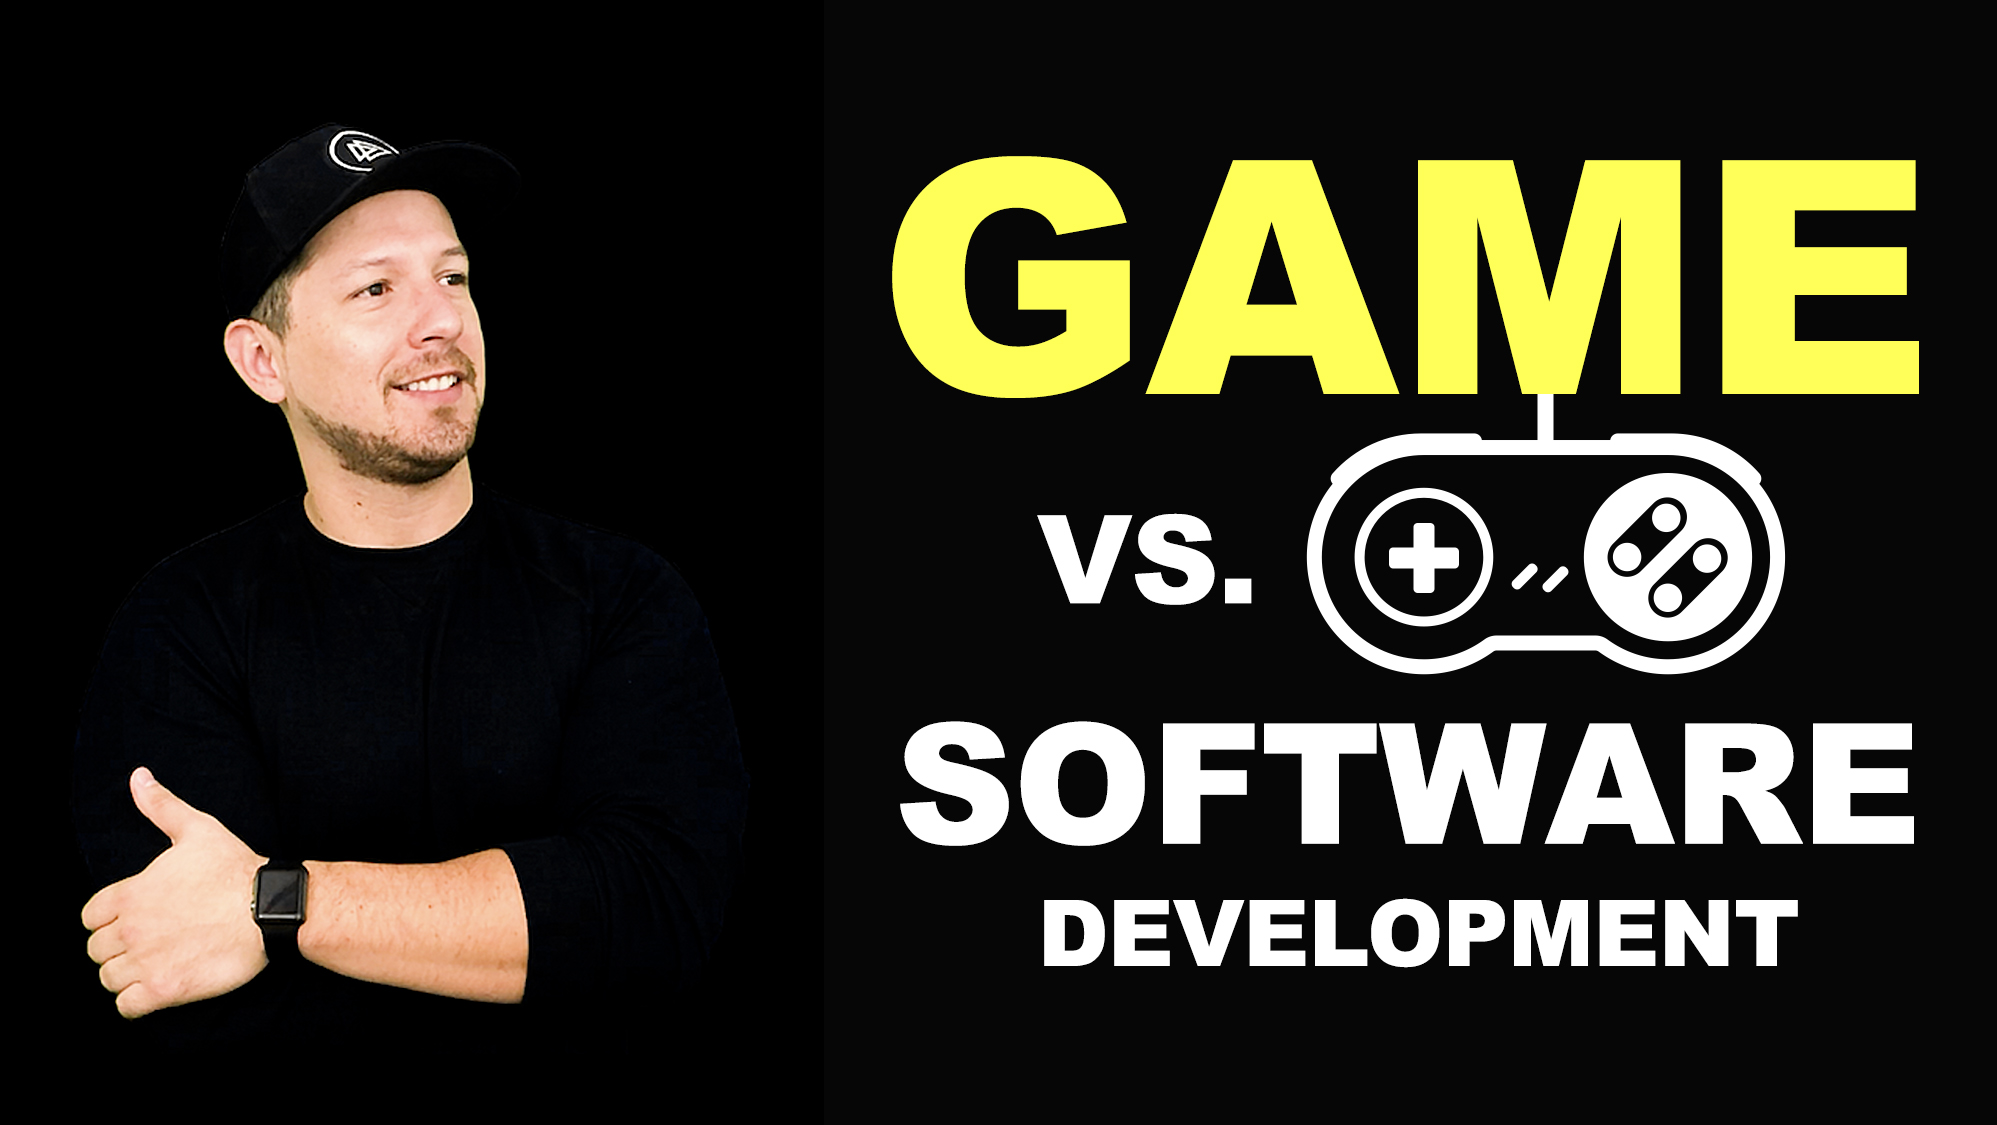 Game development vs software development: What Career path to take?